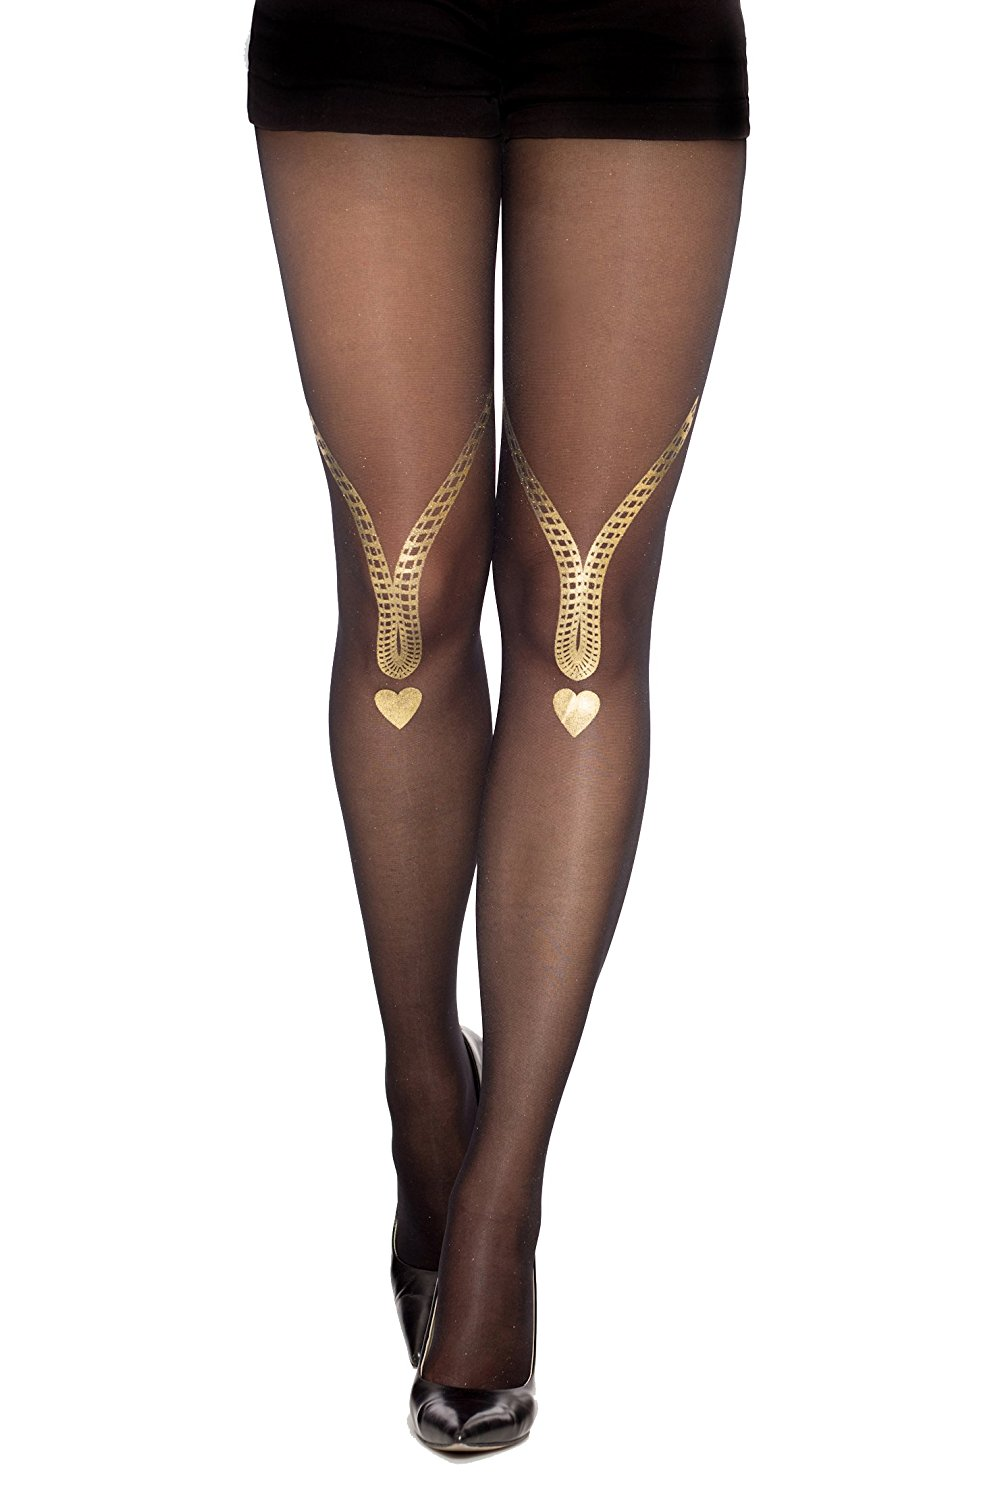 ee2a3905e9510 Get Quotations · Stern Tights Love Song Print Patterned Sheer Black Tights  Full Length Stockings